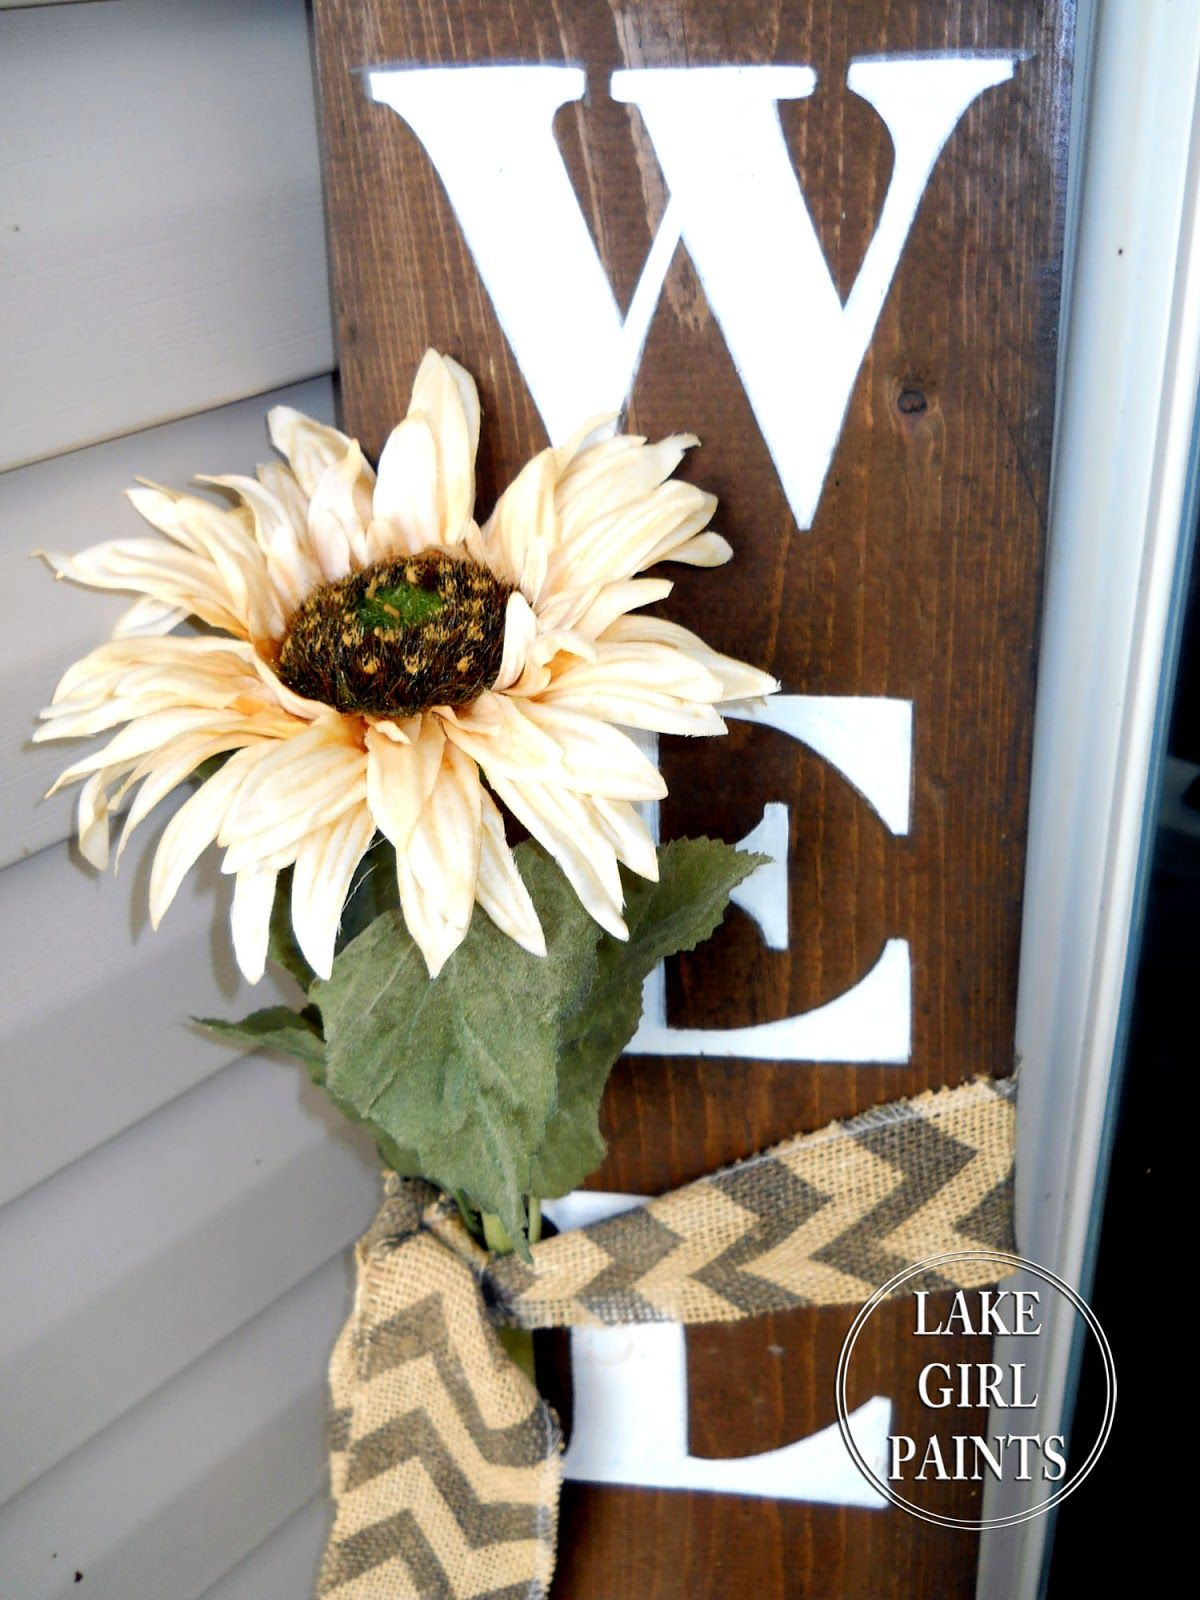 Lake girl paints how to paint a canvas pumpkin door hanging